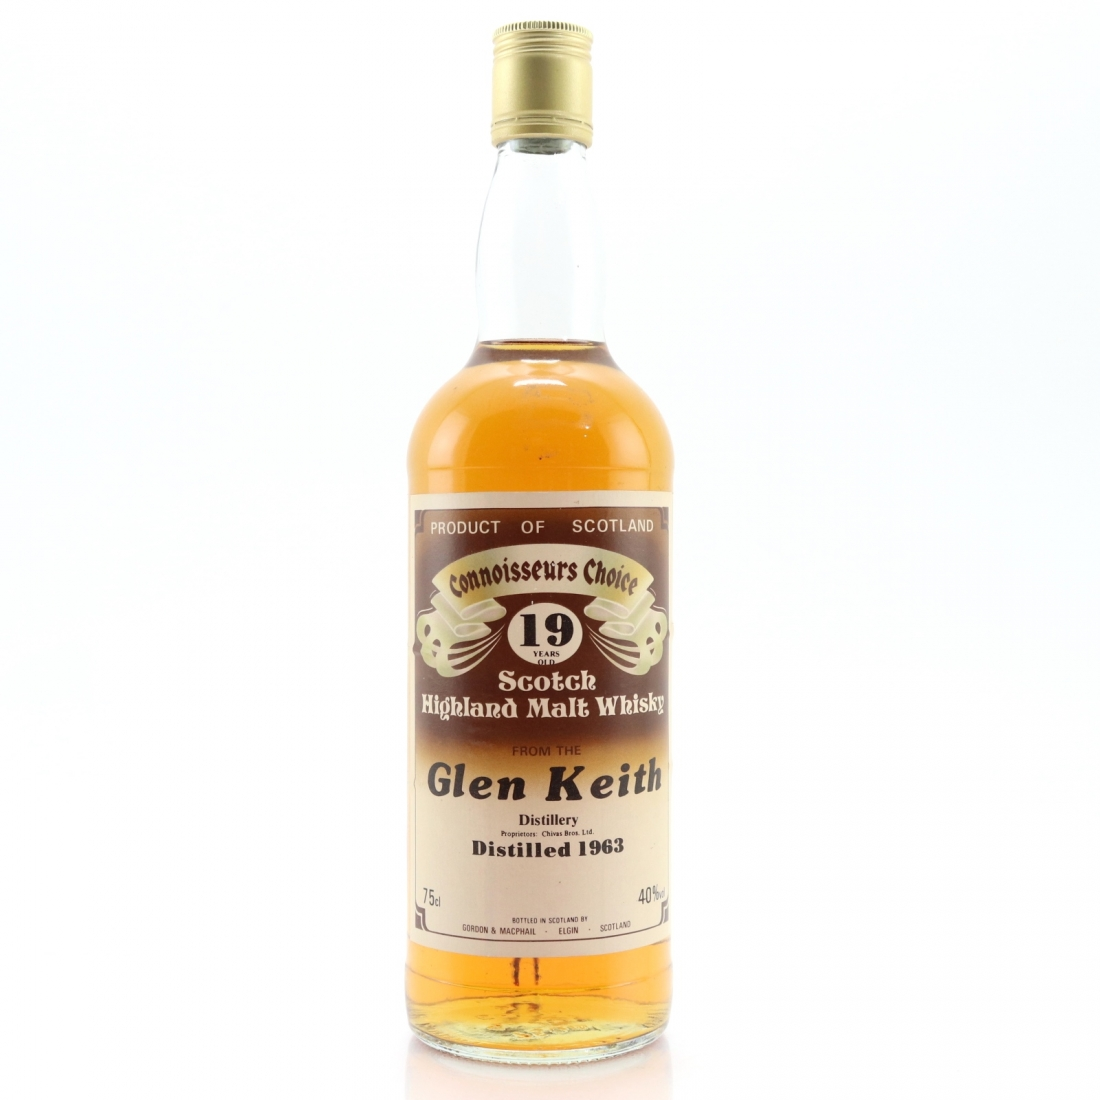 Glen Keith 1963 Gordon and MacPhail 19 Year Old